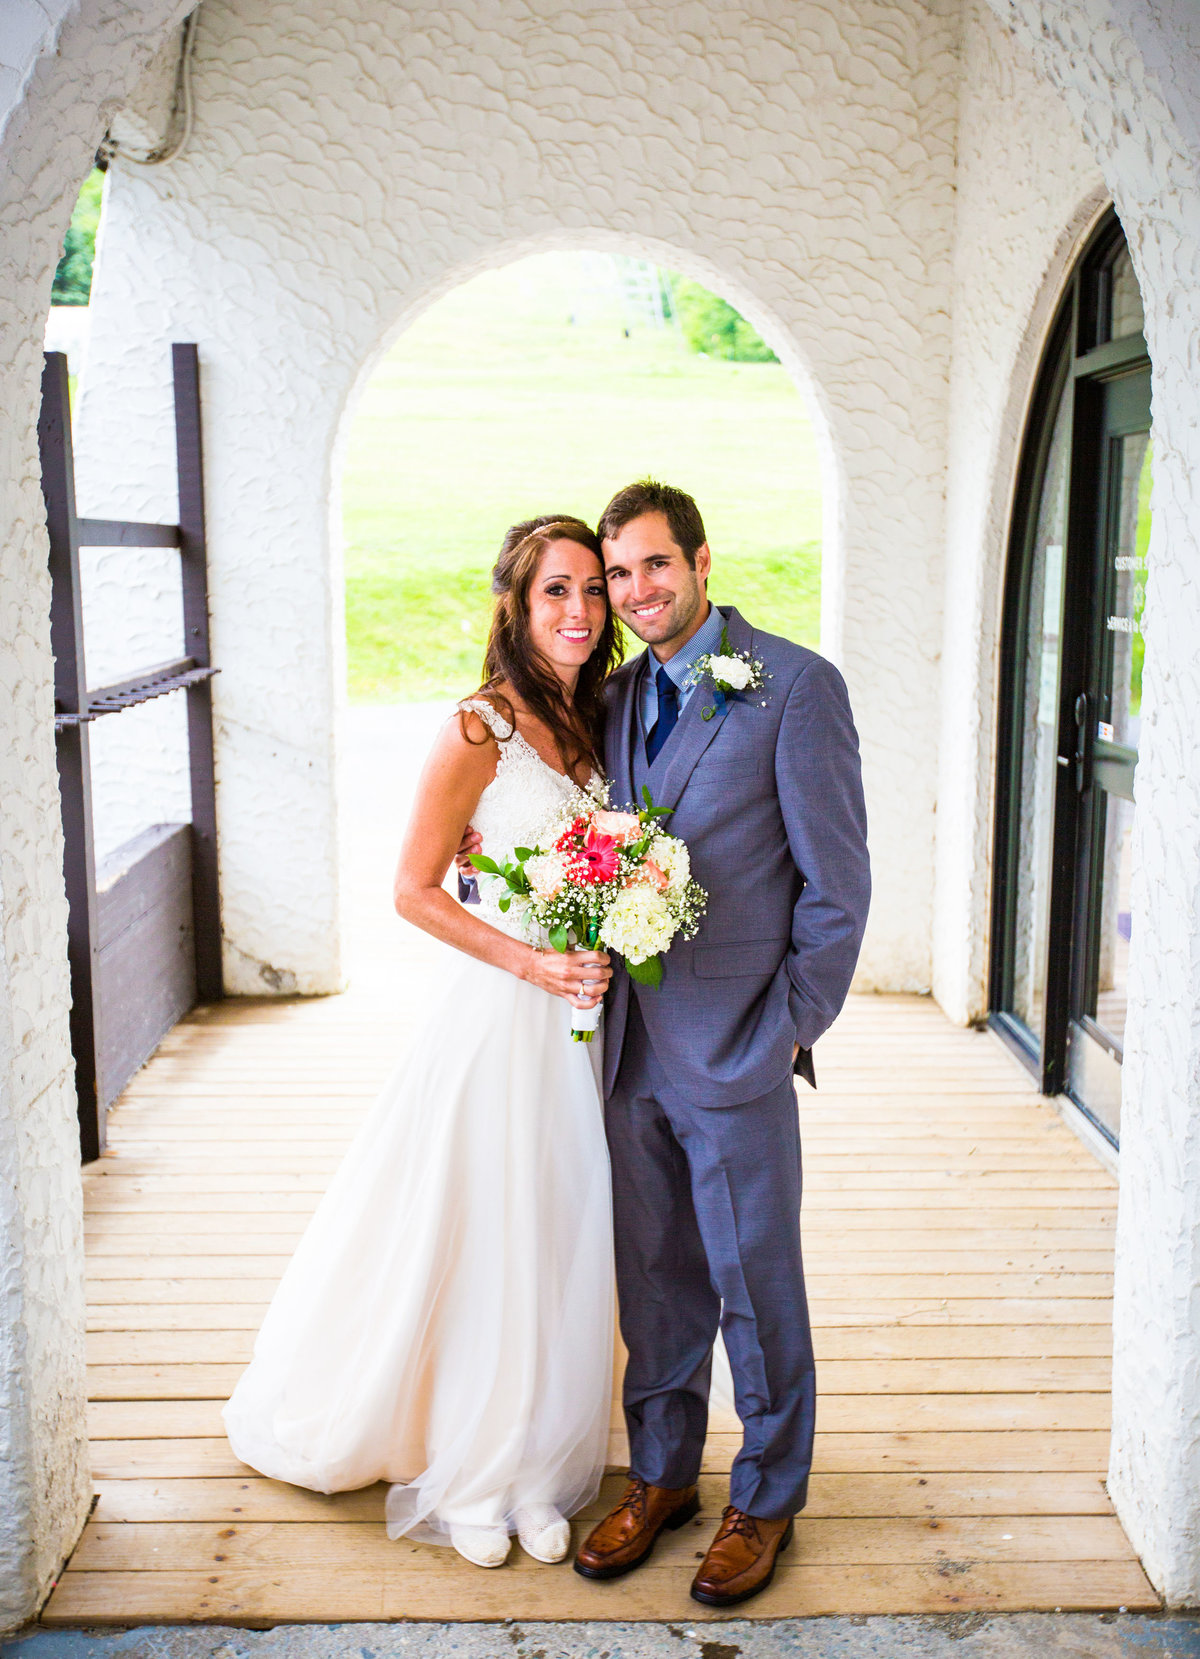 Hall-Potvin Photography Vermont Wedding Photographer Formals-20